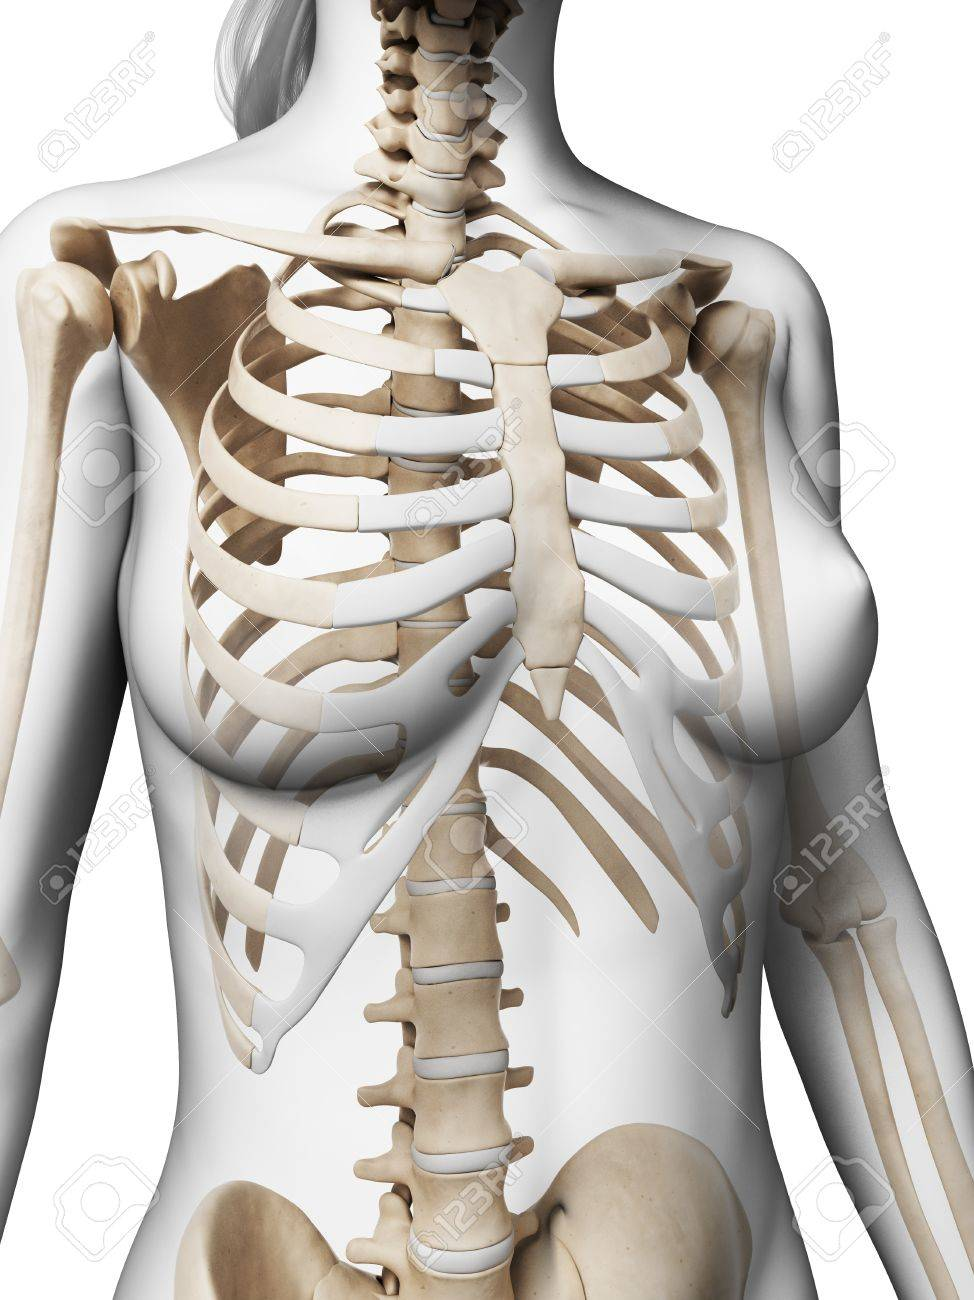 Female Ribcage Artwork Stock Photo Picture And Royalty Free Image